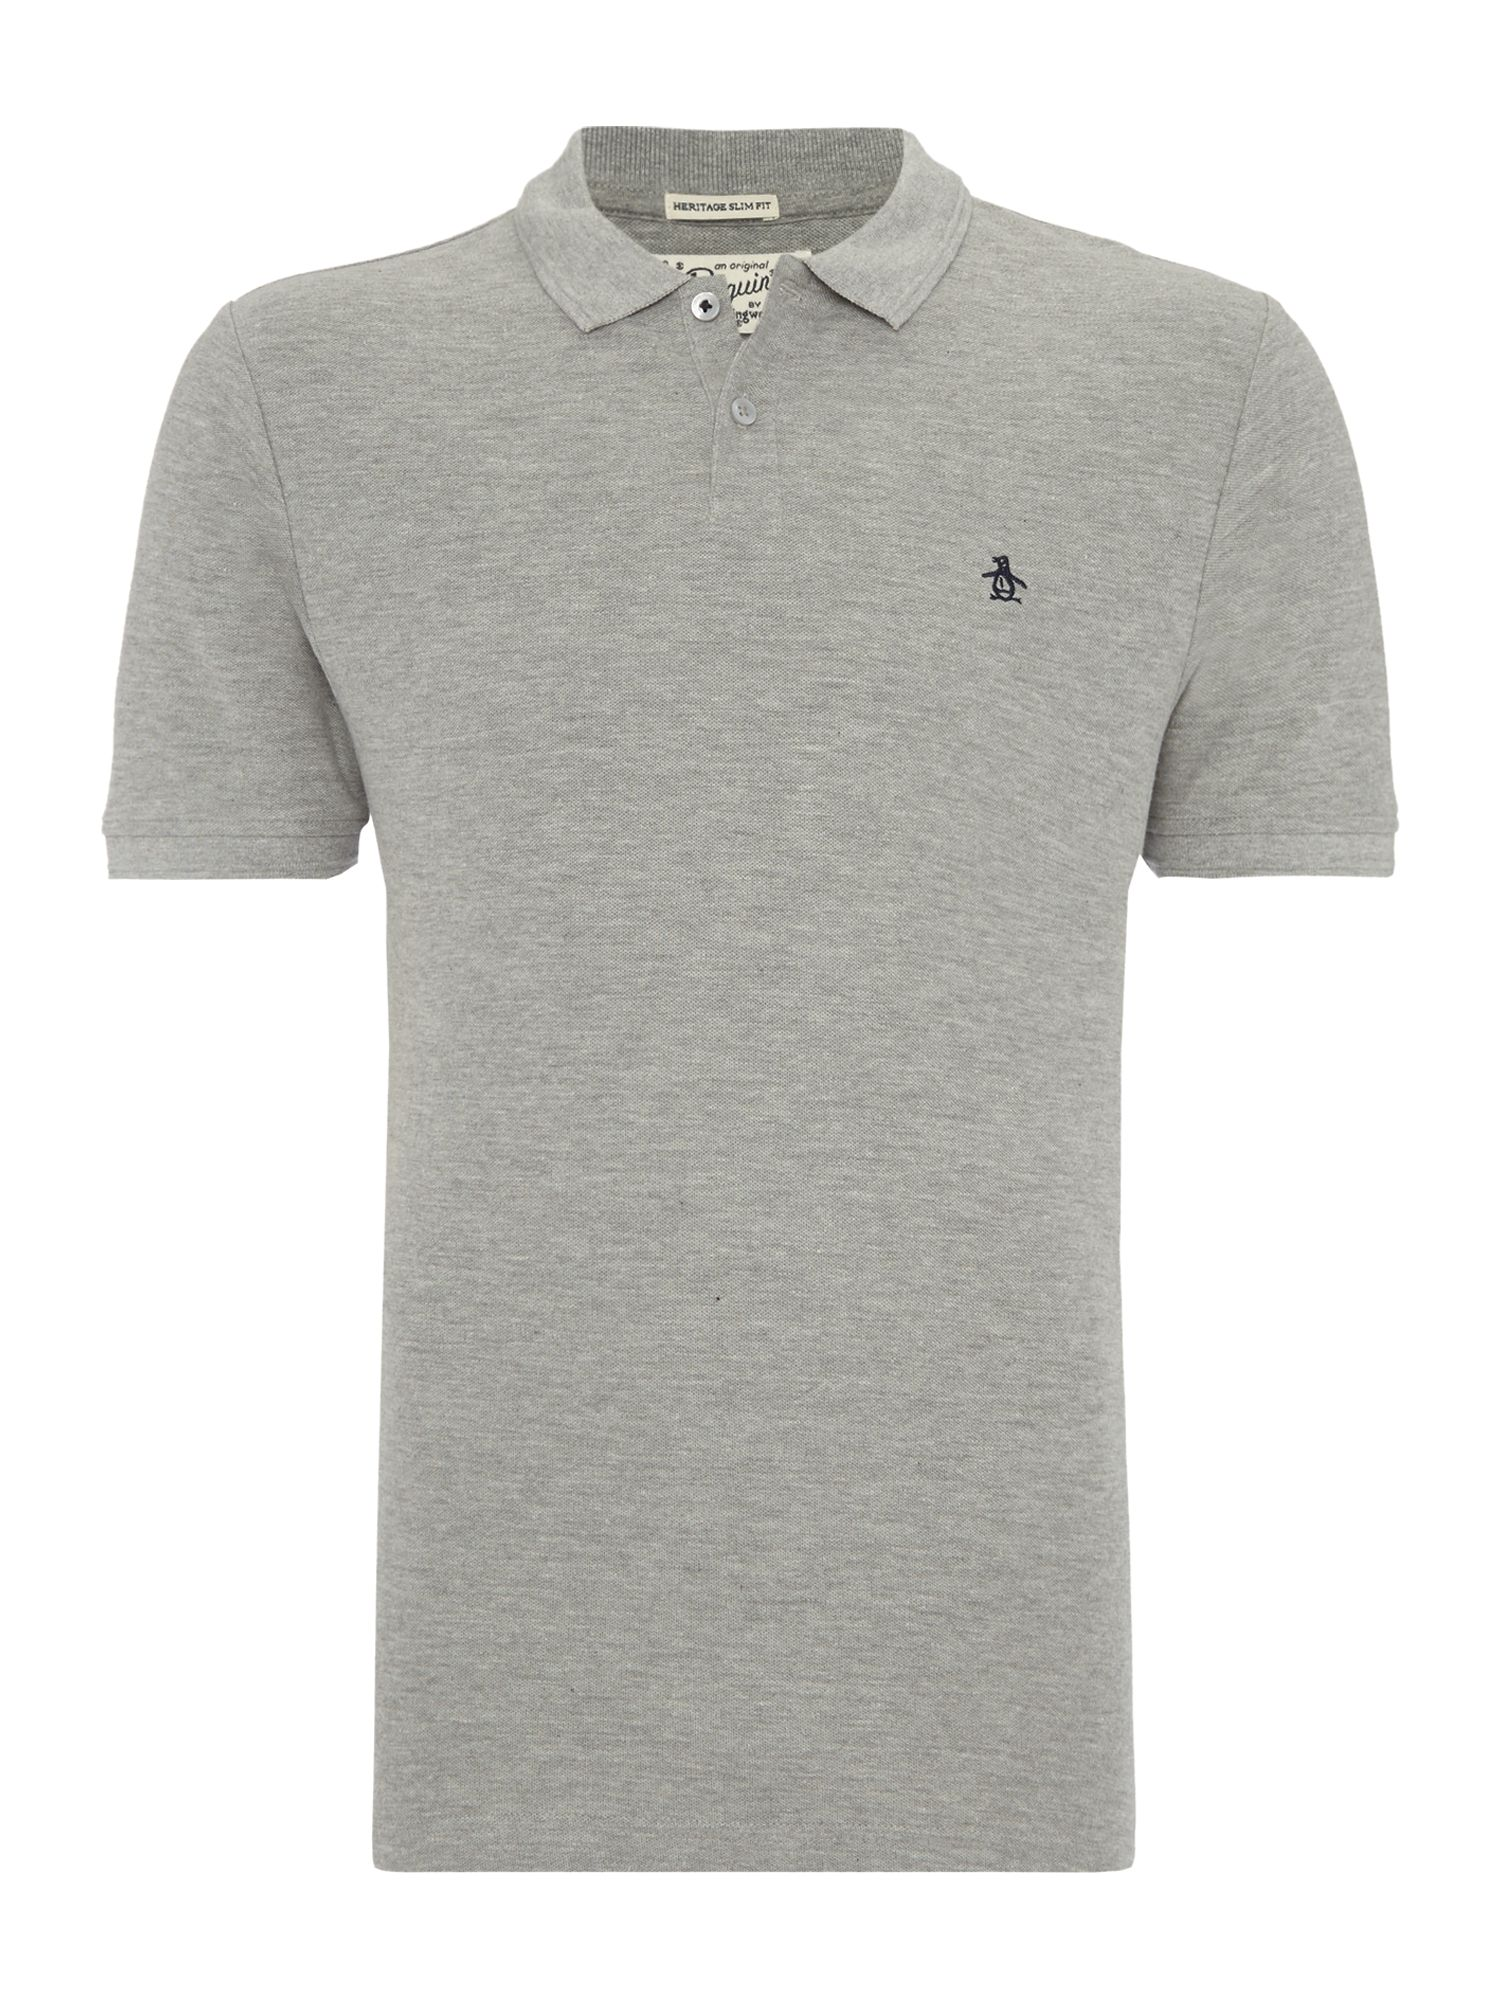 Men's Original Penguin Cotton Raised-Rib short sleeve polo, Grey